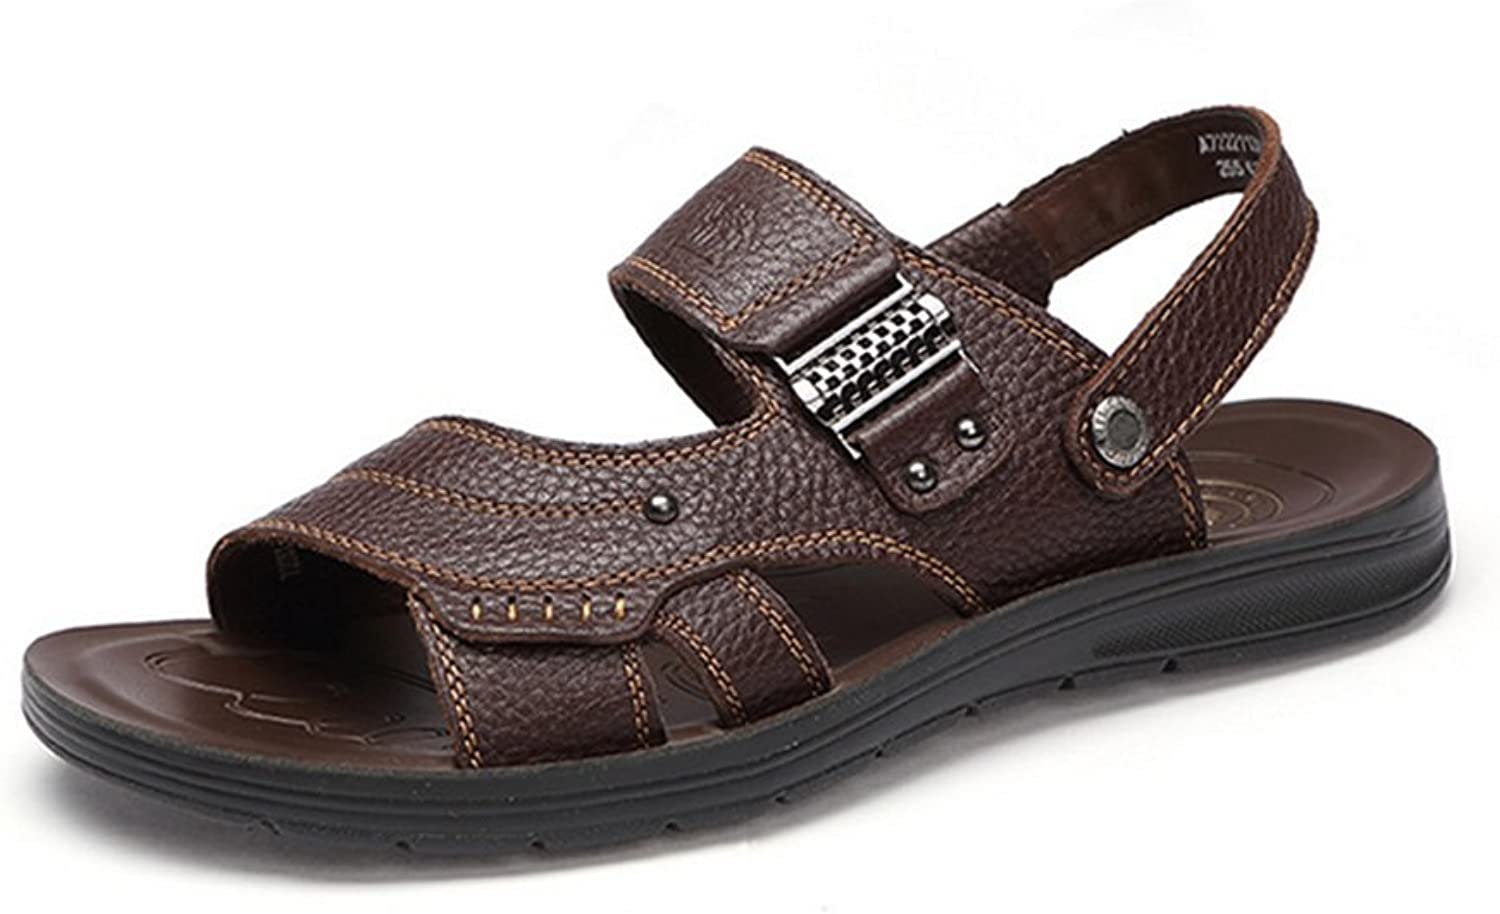 Weiwei herr Casual Sandals och Slippers,strand Andable Andable Andable Soft Sole Sandals  bästa kvalitet